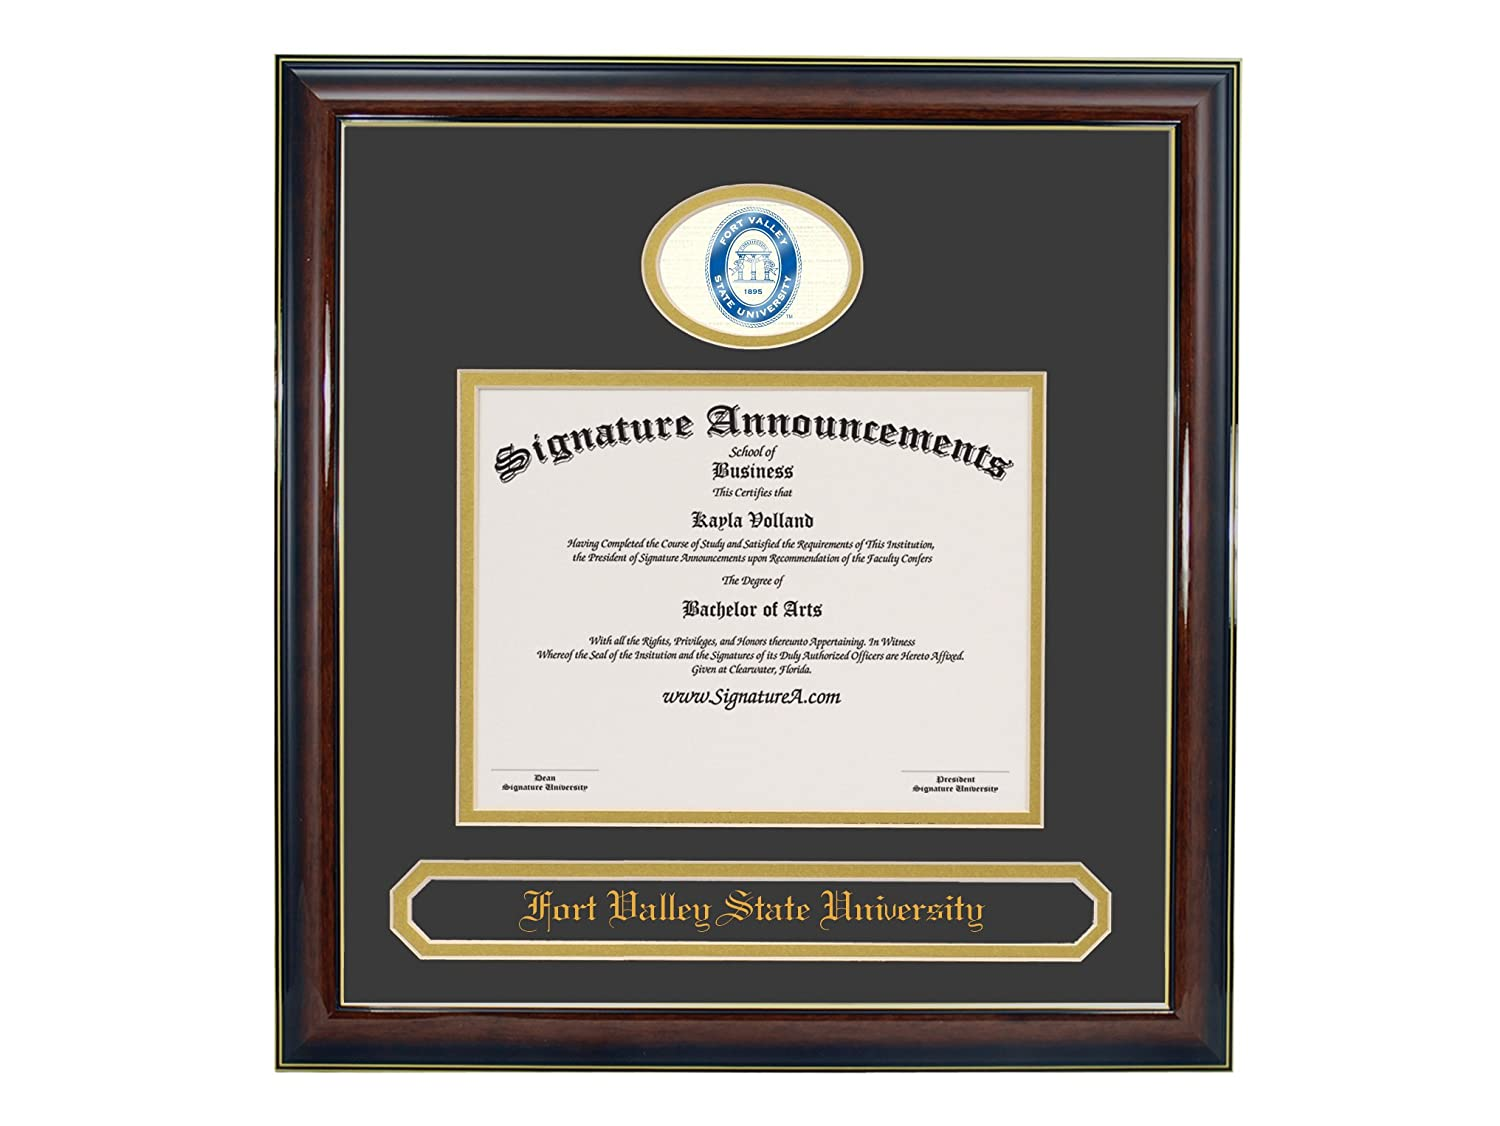 Sculpted Foil Seal /& Name Graduation Diploma Frame 16 x 16 Gloss Mahogany with Gold Accent Signature Announcements Fort Valley State University Undergraduate